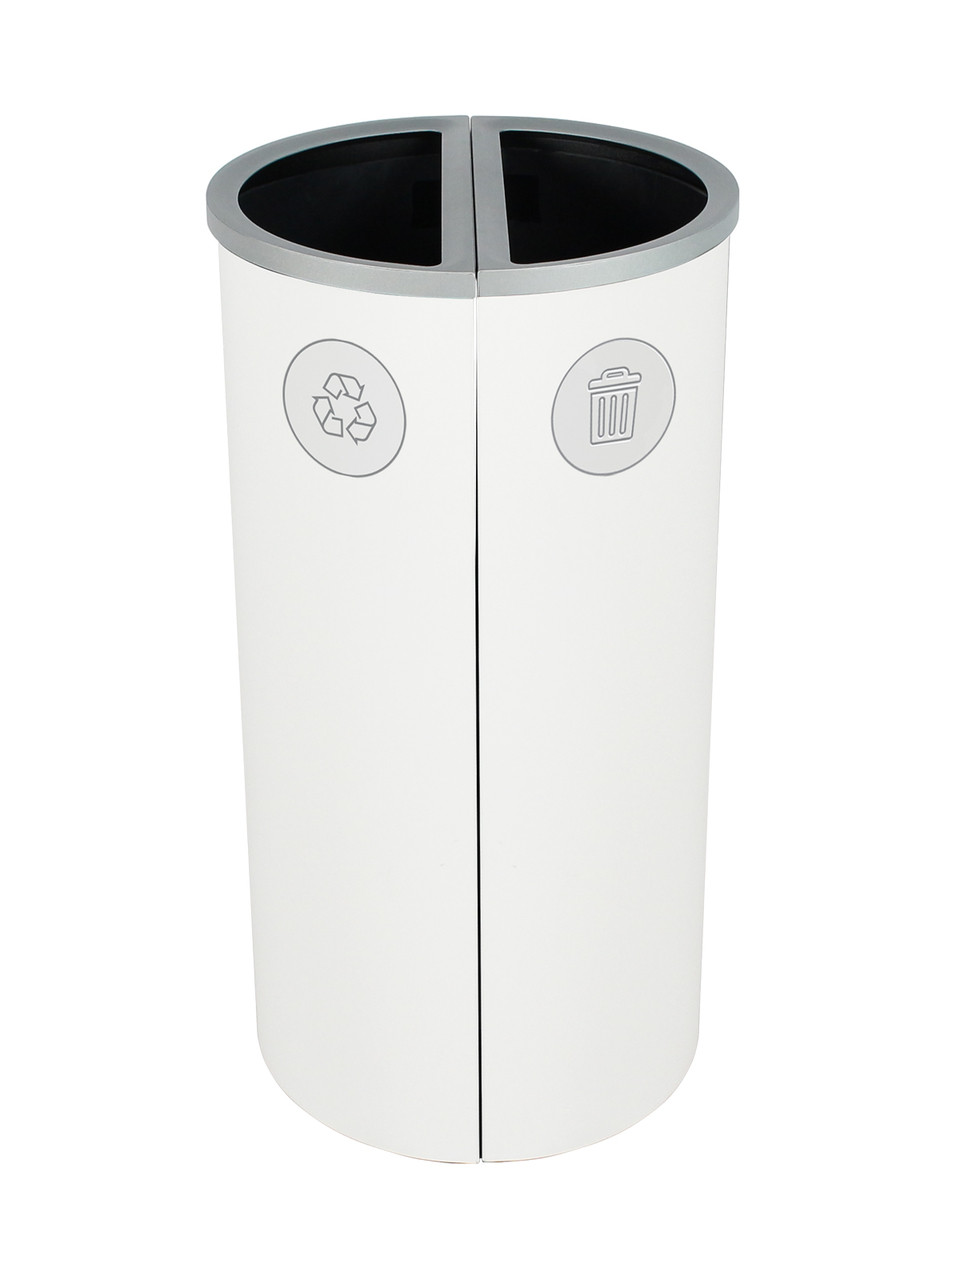 16 Gallon Spectrum Round Trash Can & Recycle Bin White 8107088-44